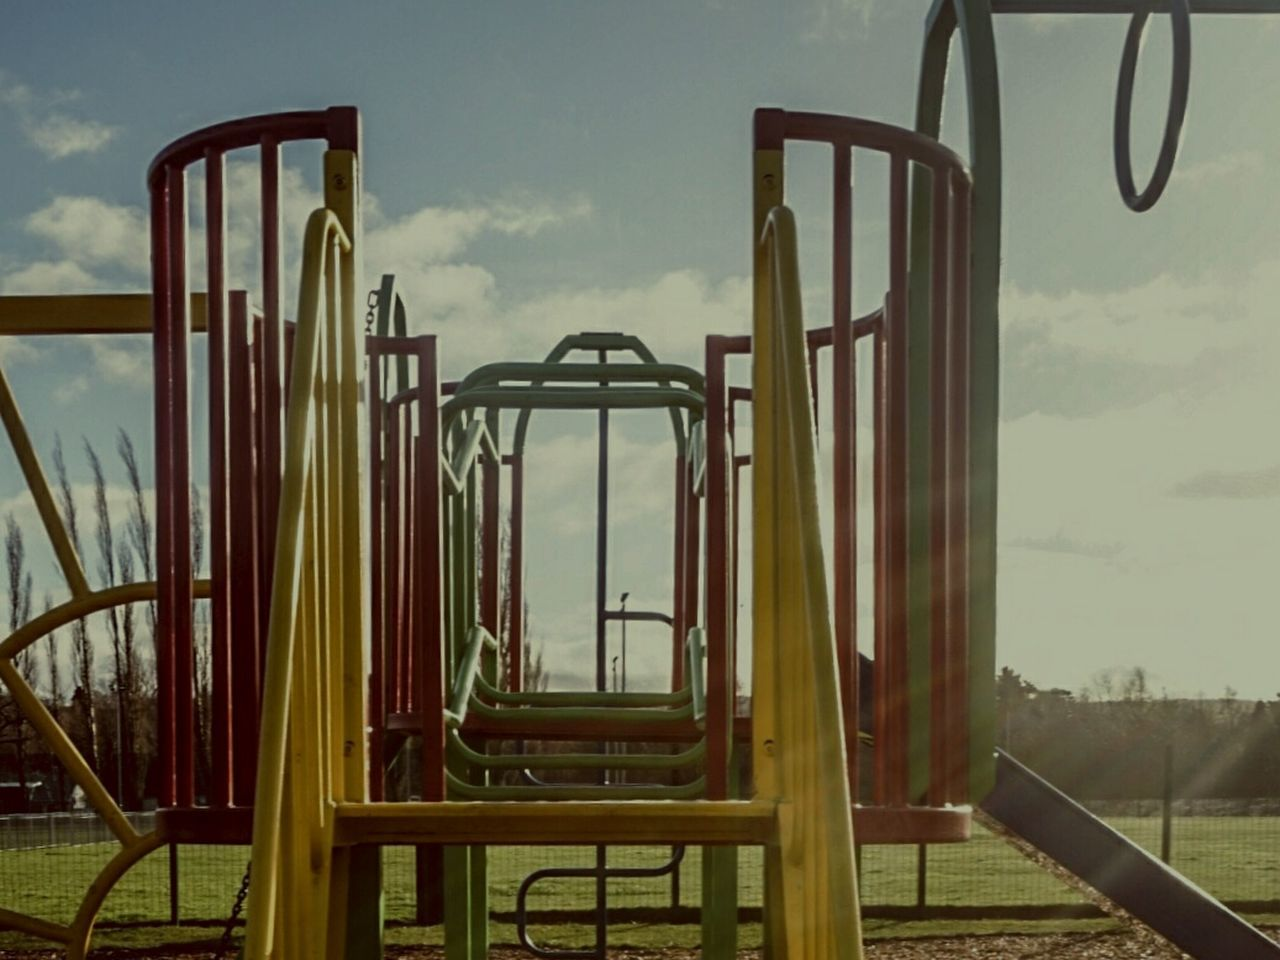 sky, playground, outdoor play equipment, metal, childhood, slide, jungle gym, outdoors, day, no people, cloud - sky, nature, merry-go-round